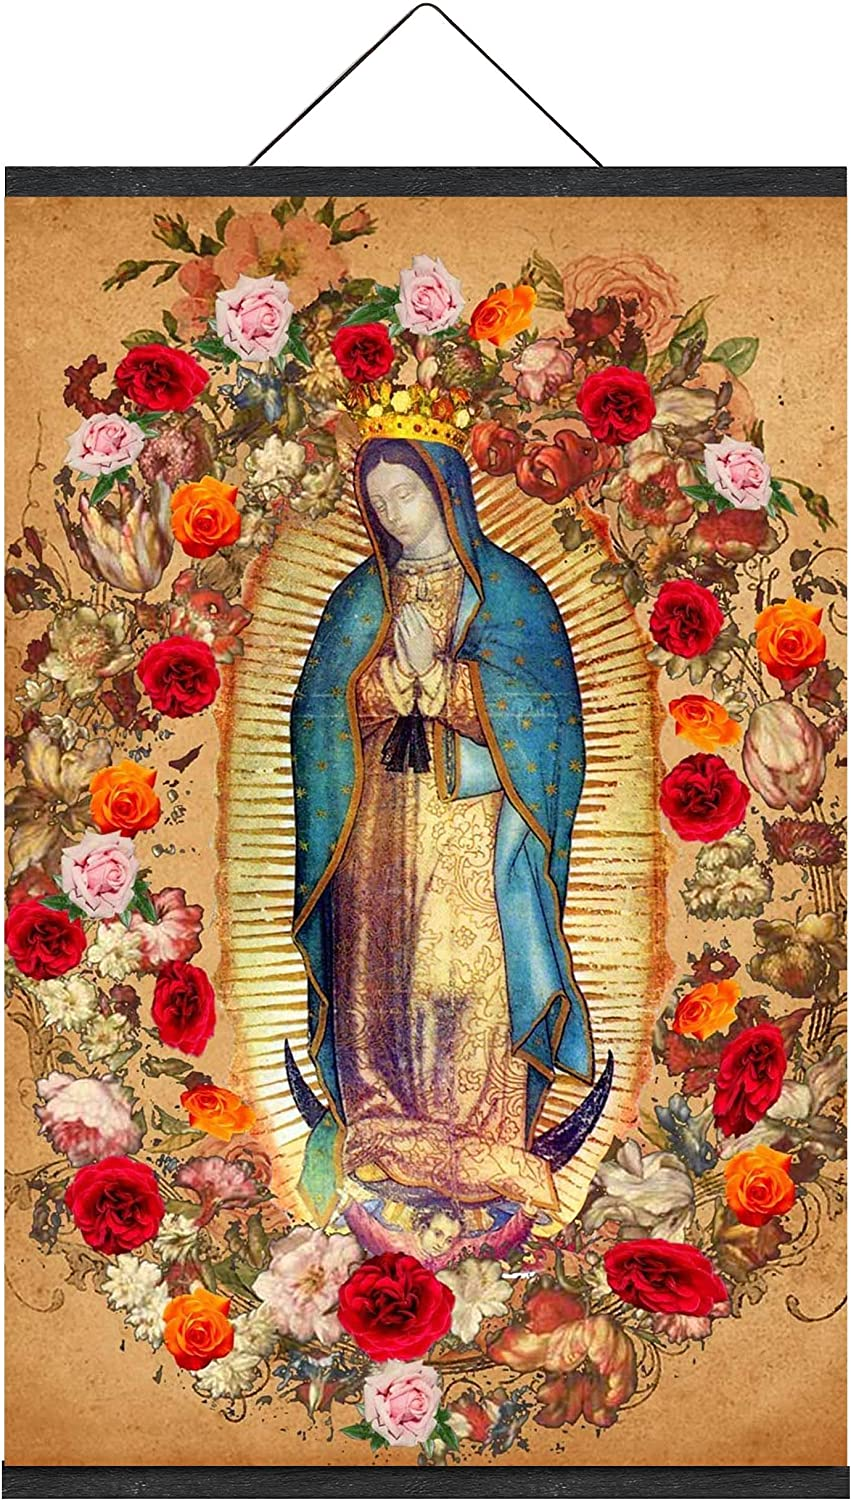 Virgin Mary Our Lady of Guadalupe de Art Print la 贈与 NEW売り切れる前に☆ Mexican Virgen